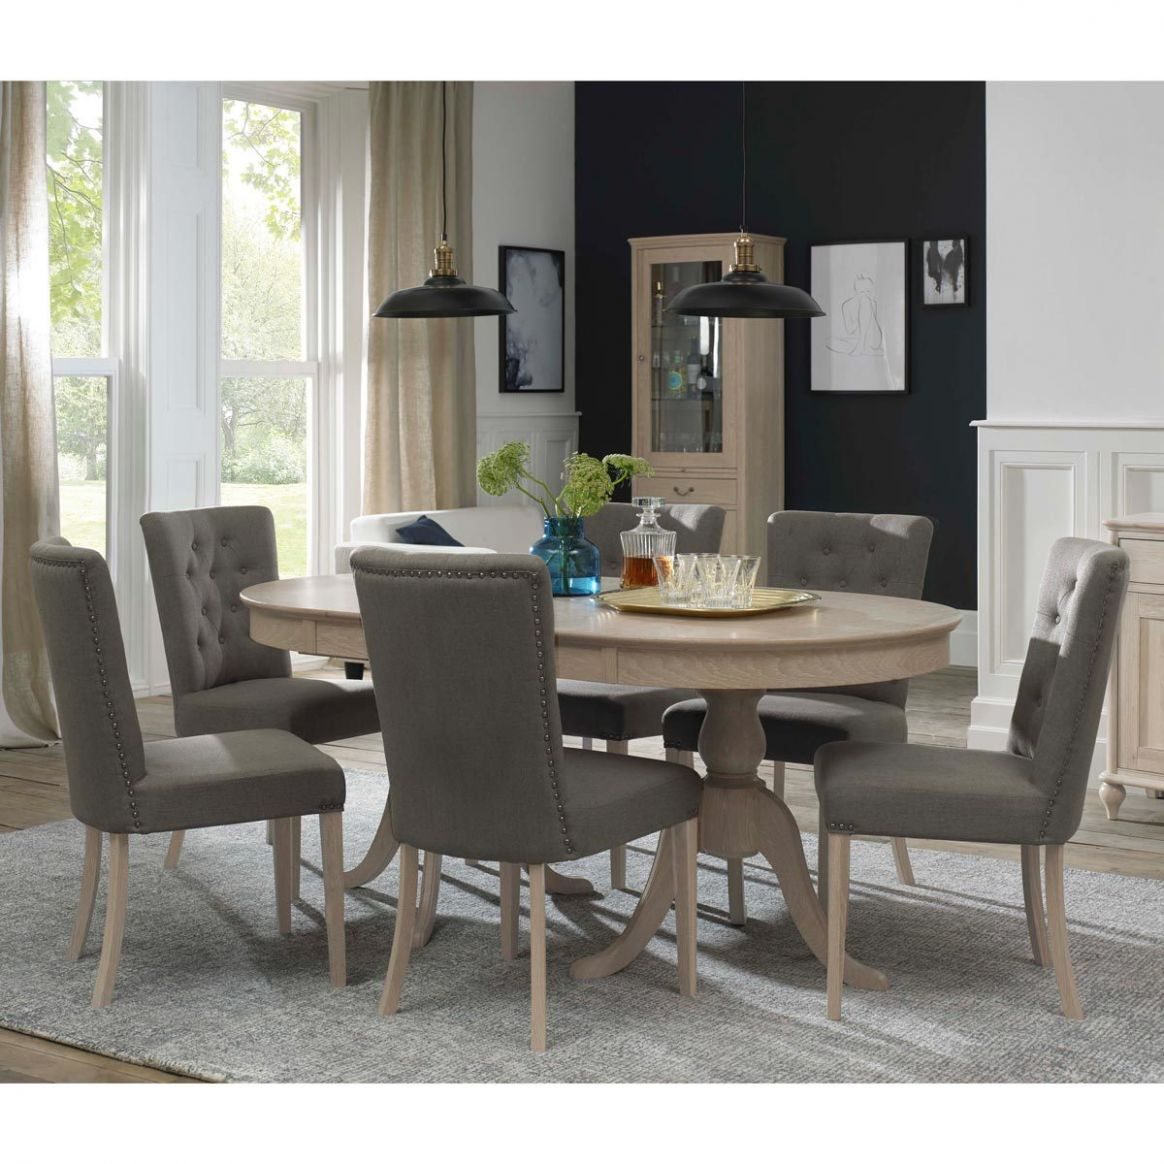 Bentley Designs Margaux Chalk Oak Extending Dining Table + 10 Fabric  Upholstered Chairs, Seats 10-10 | Costco UK